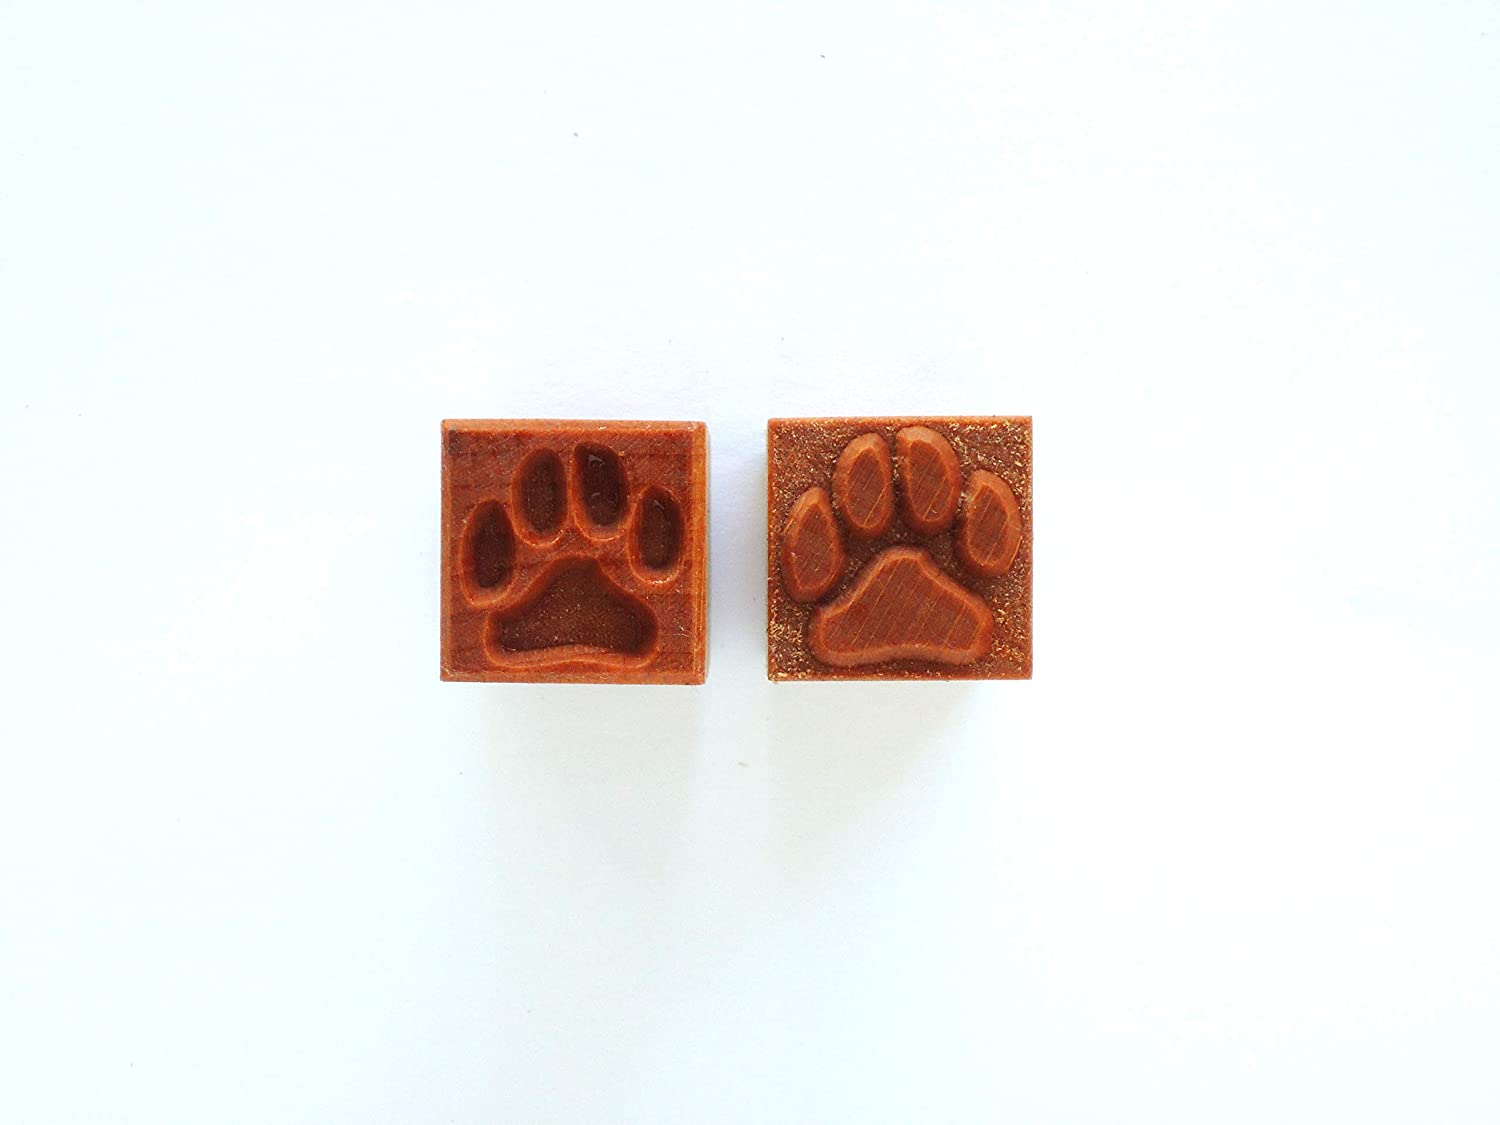 MKM Pottery Tools Stamps 4 Clay Medium Square Decorative Stamp for Clay (Ssm-144 Dog Paw)